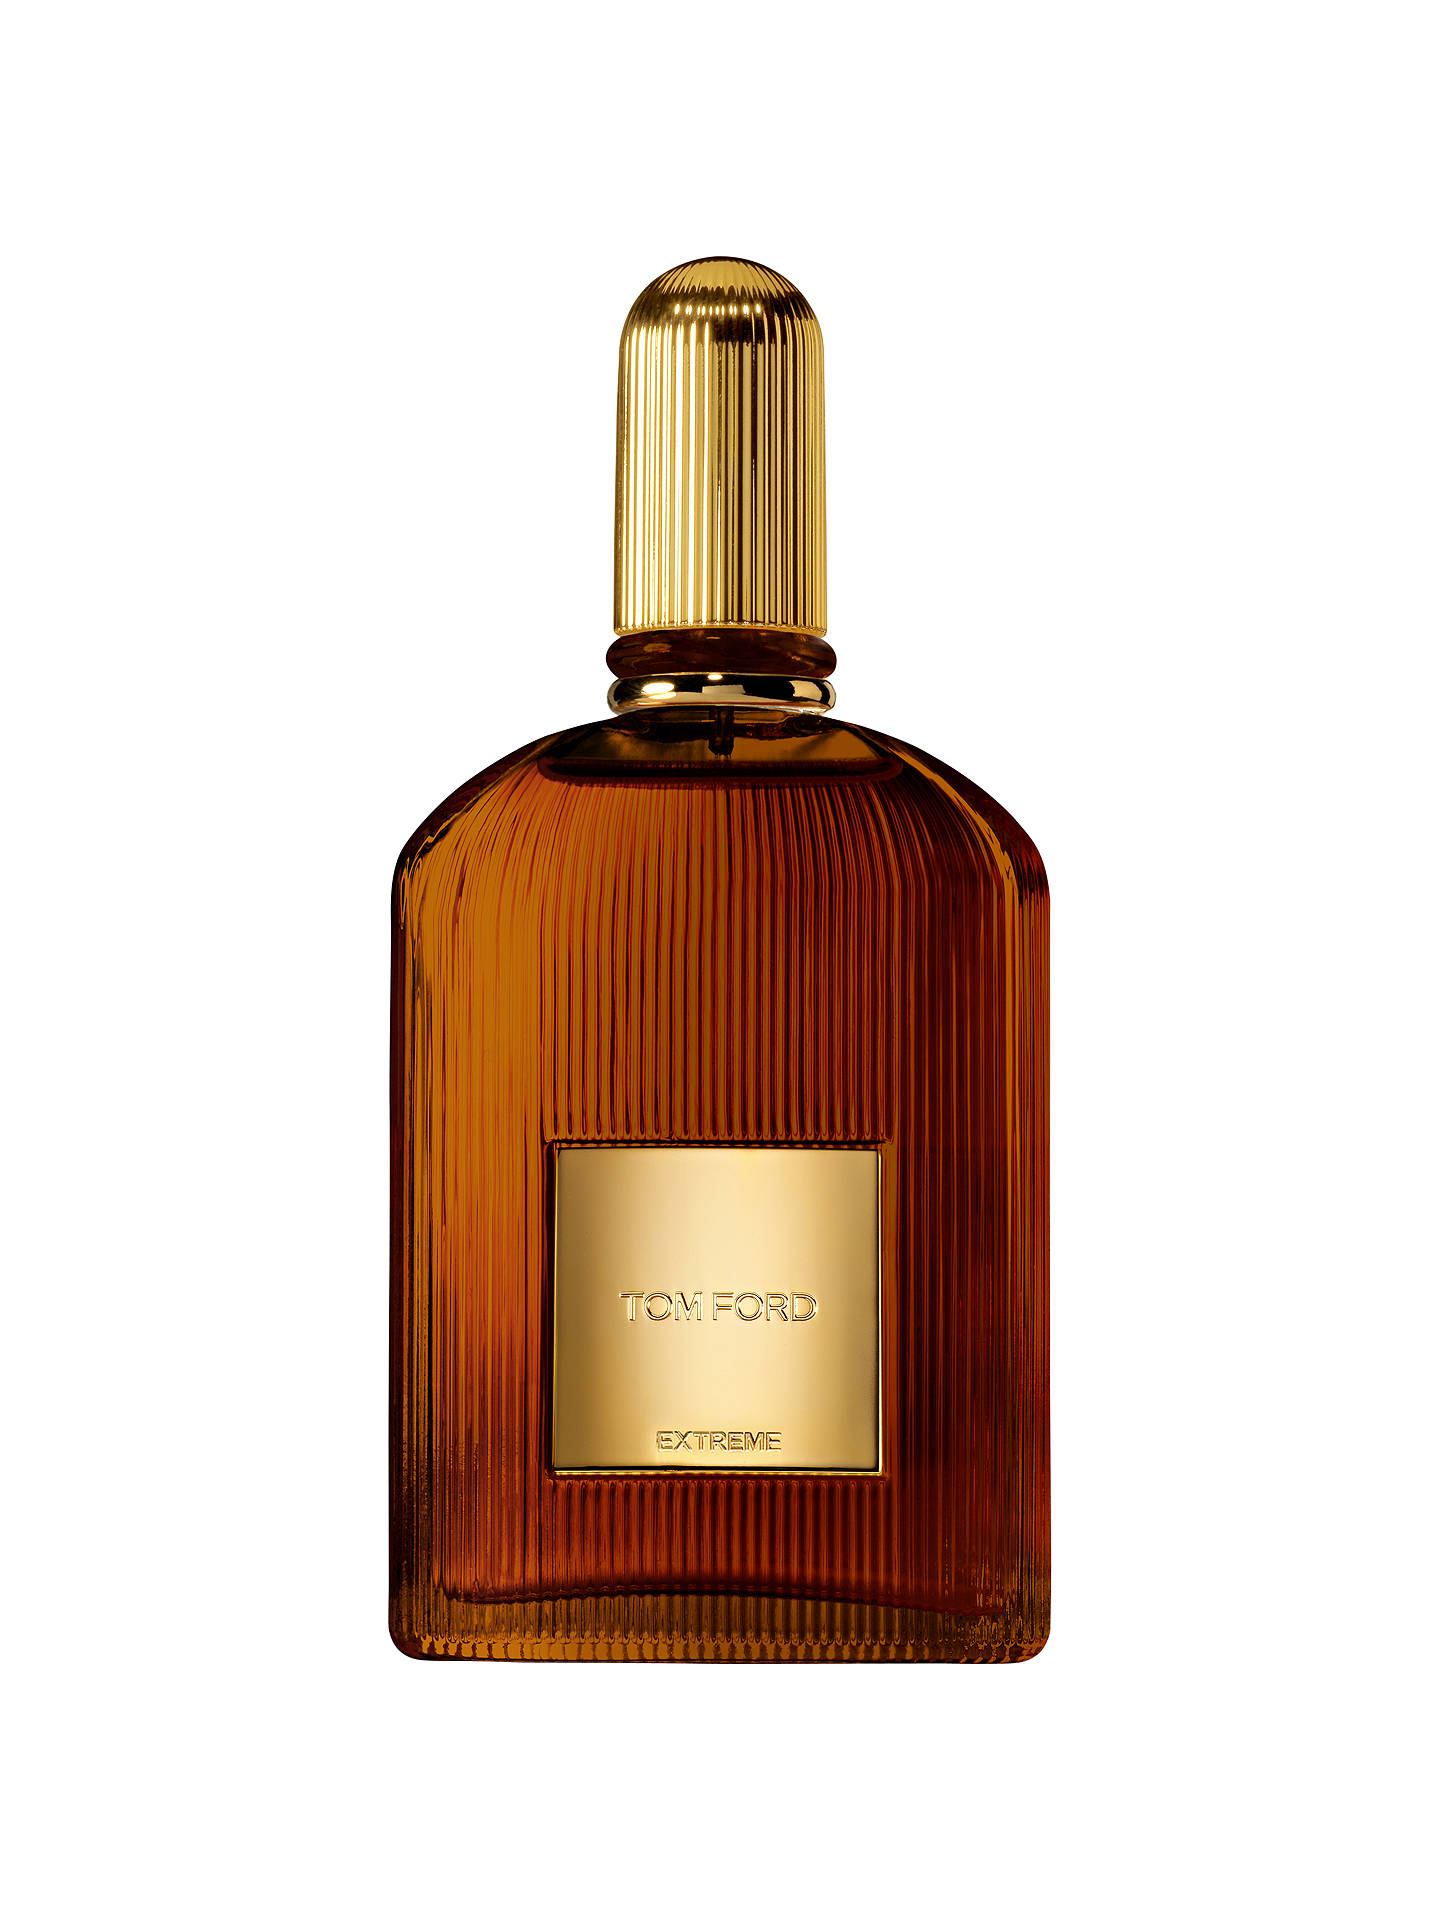 BuyTOM FORD Extreme Eau de Toilette, 50ml Online at johnlewis.com